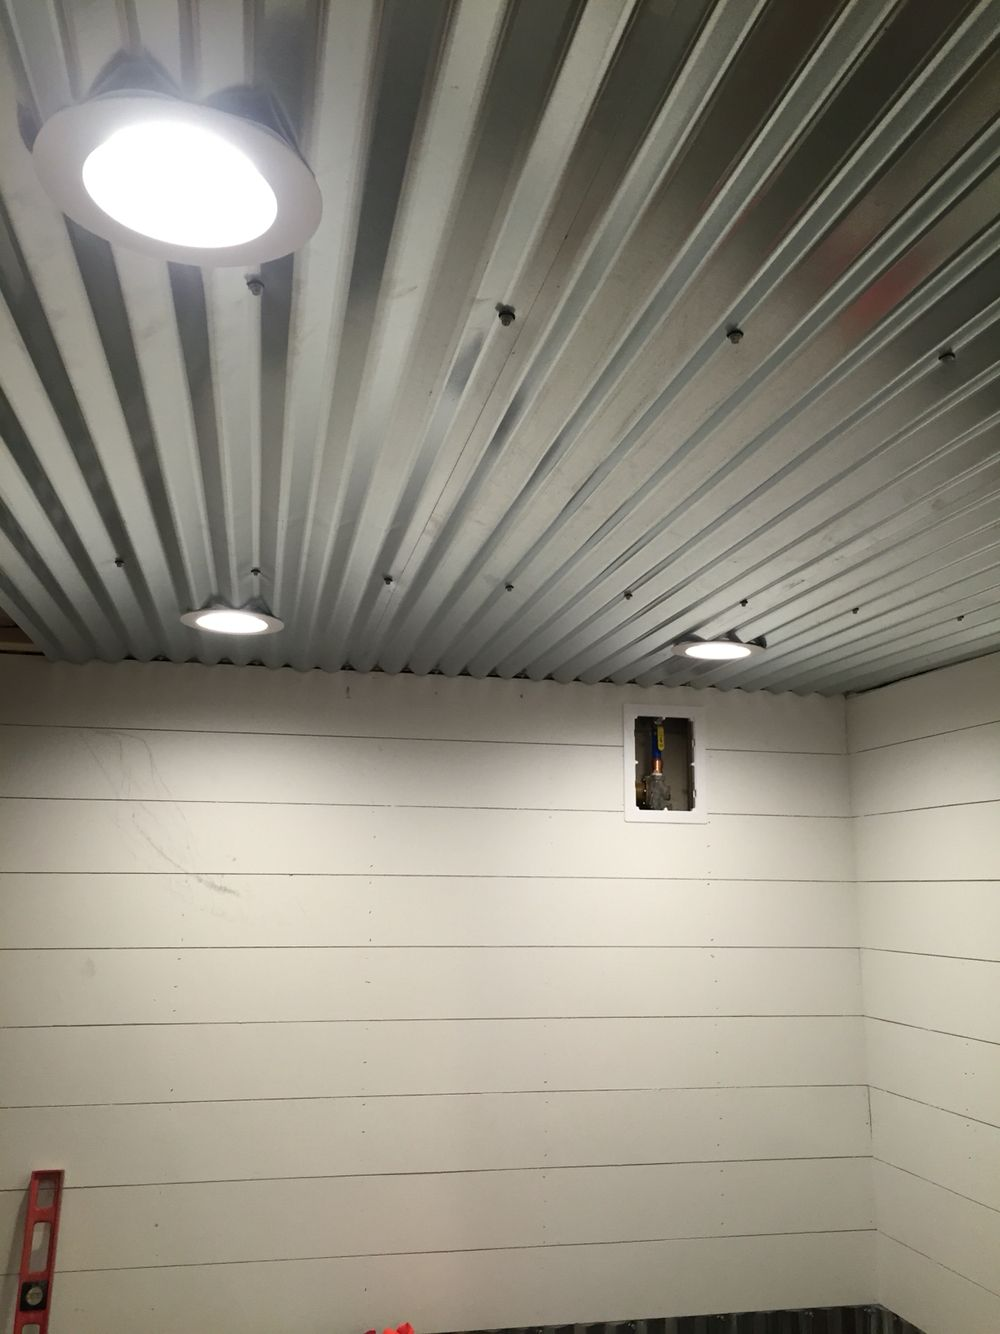 Camp Kitchen Equipment | Amazon.com. Drop Ceiling BasementBasement Ceiling  OptionsUnfinished ...